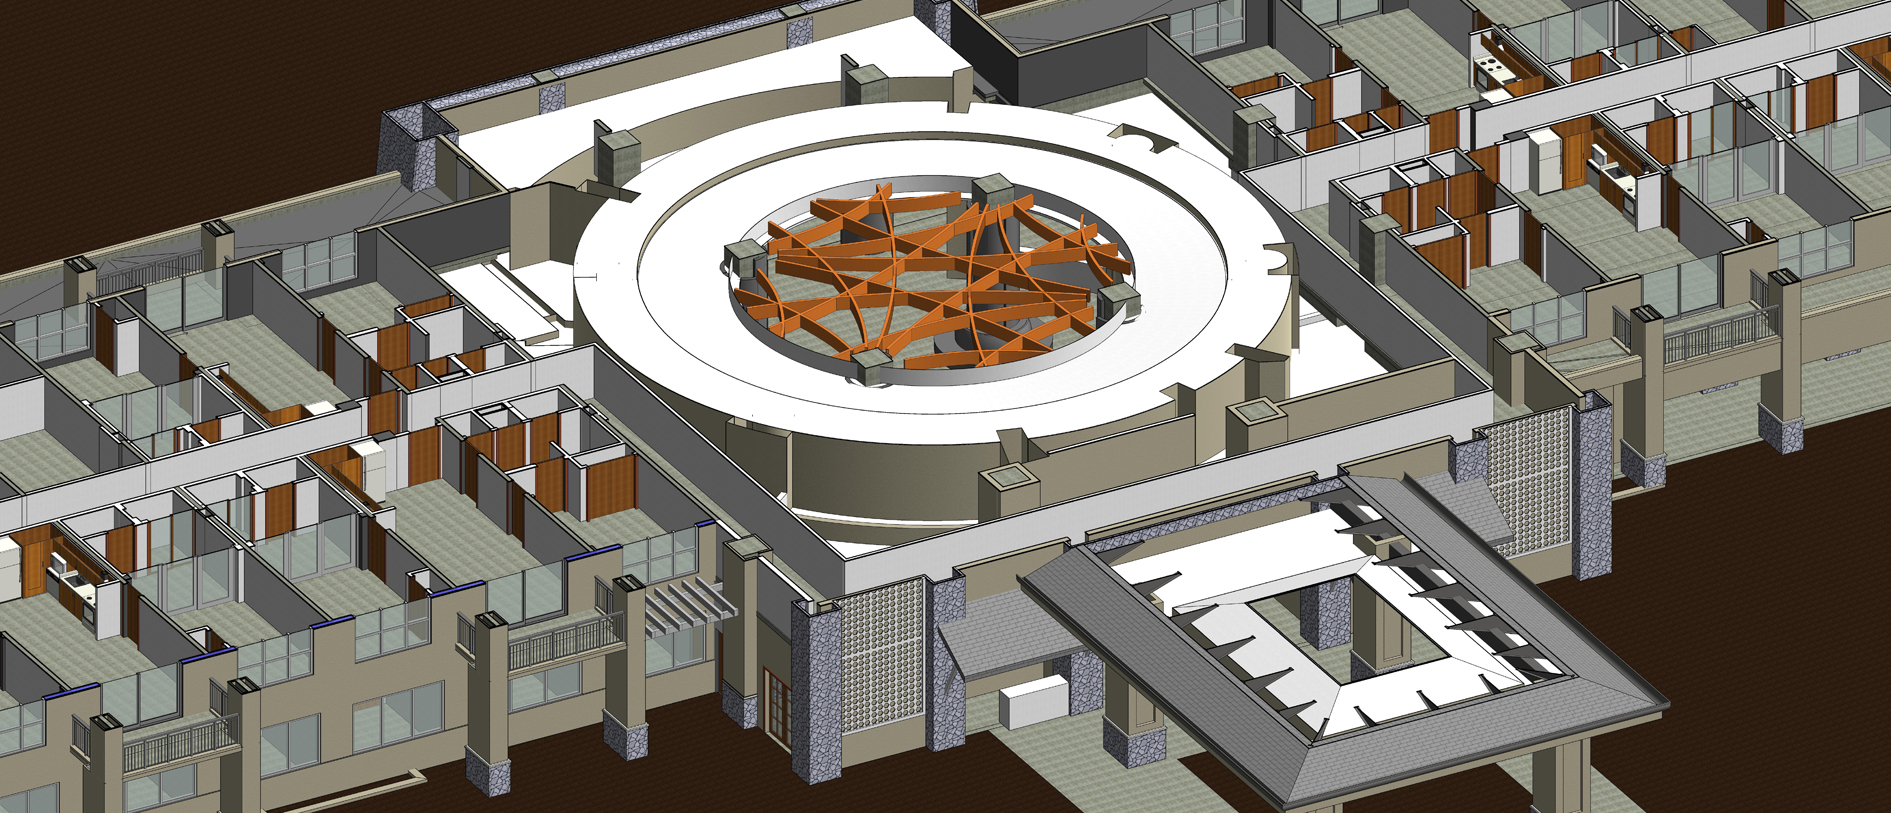 bim consulting service for a hotel building